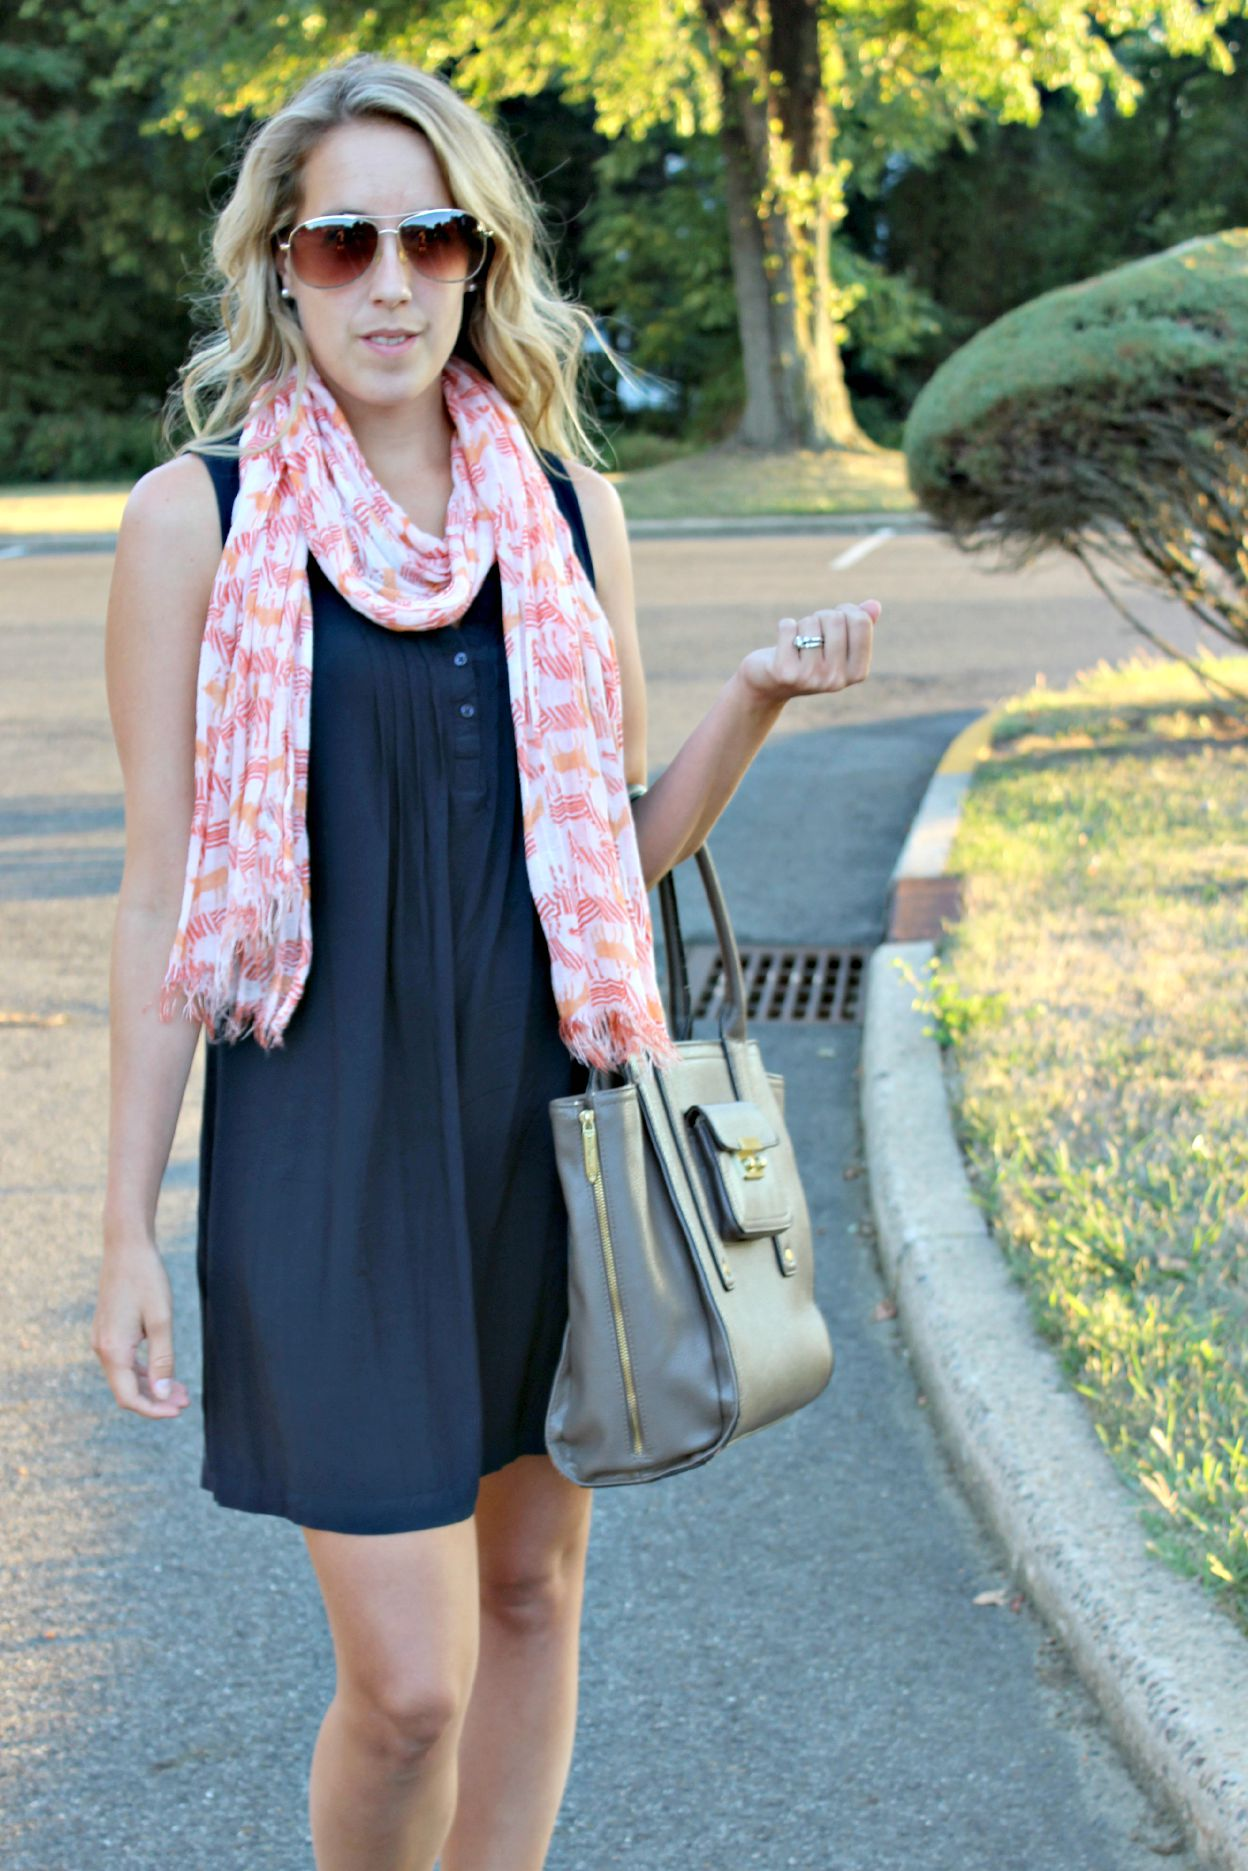 Wearing: Back to School for 2015